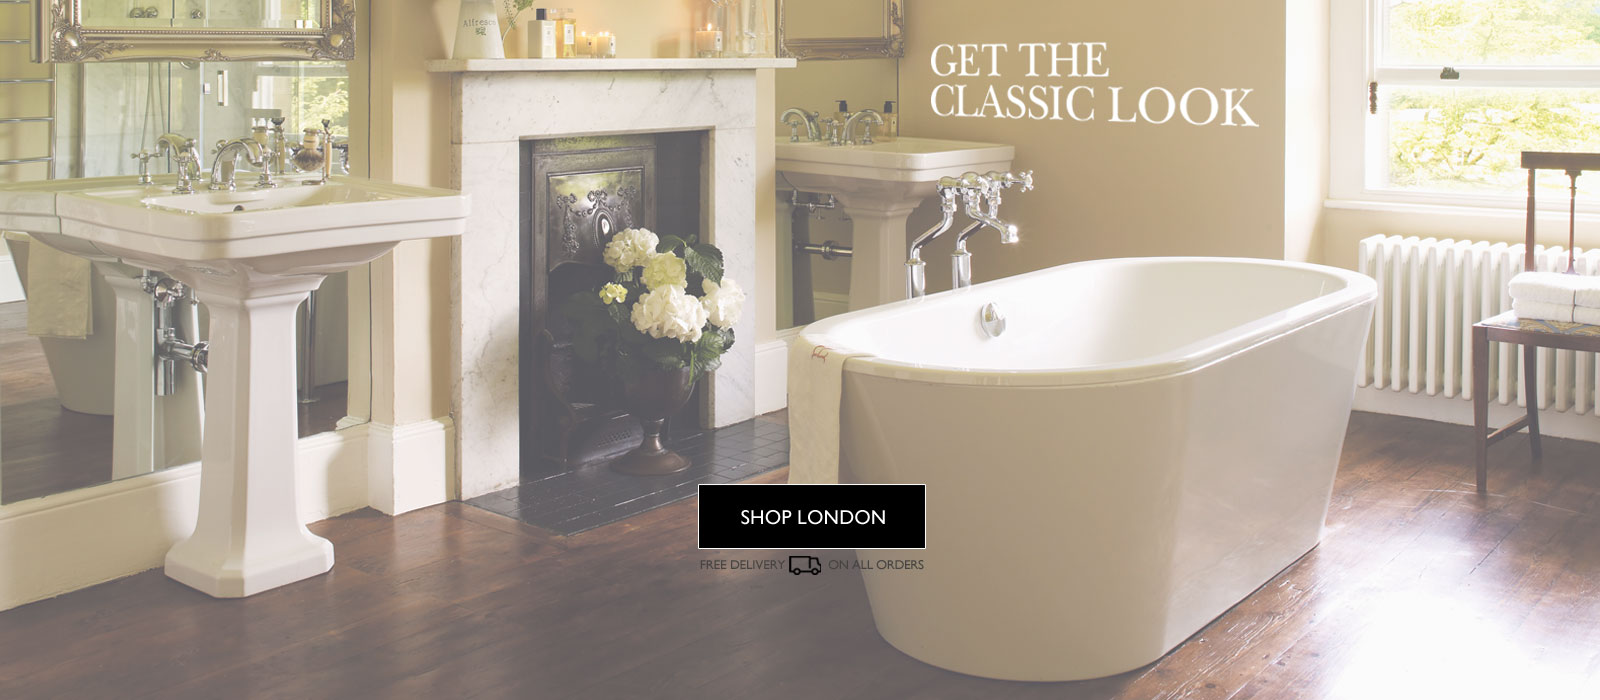 Designer bathrooms uk - Get The Classic Look